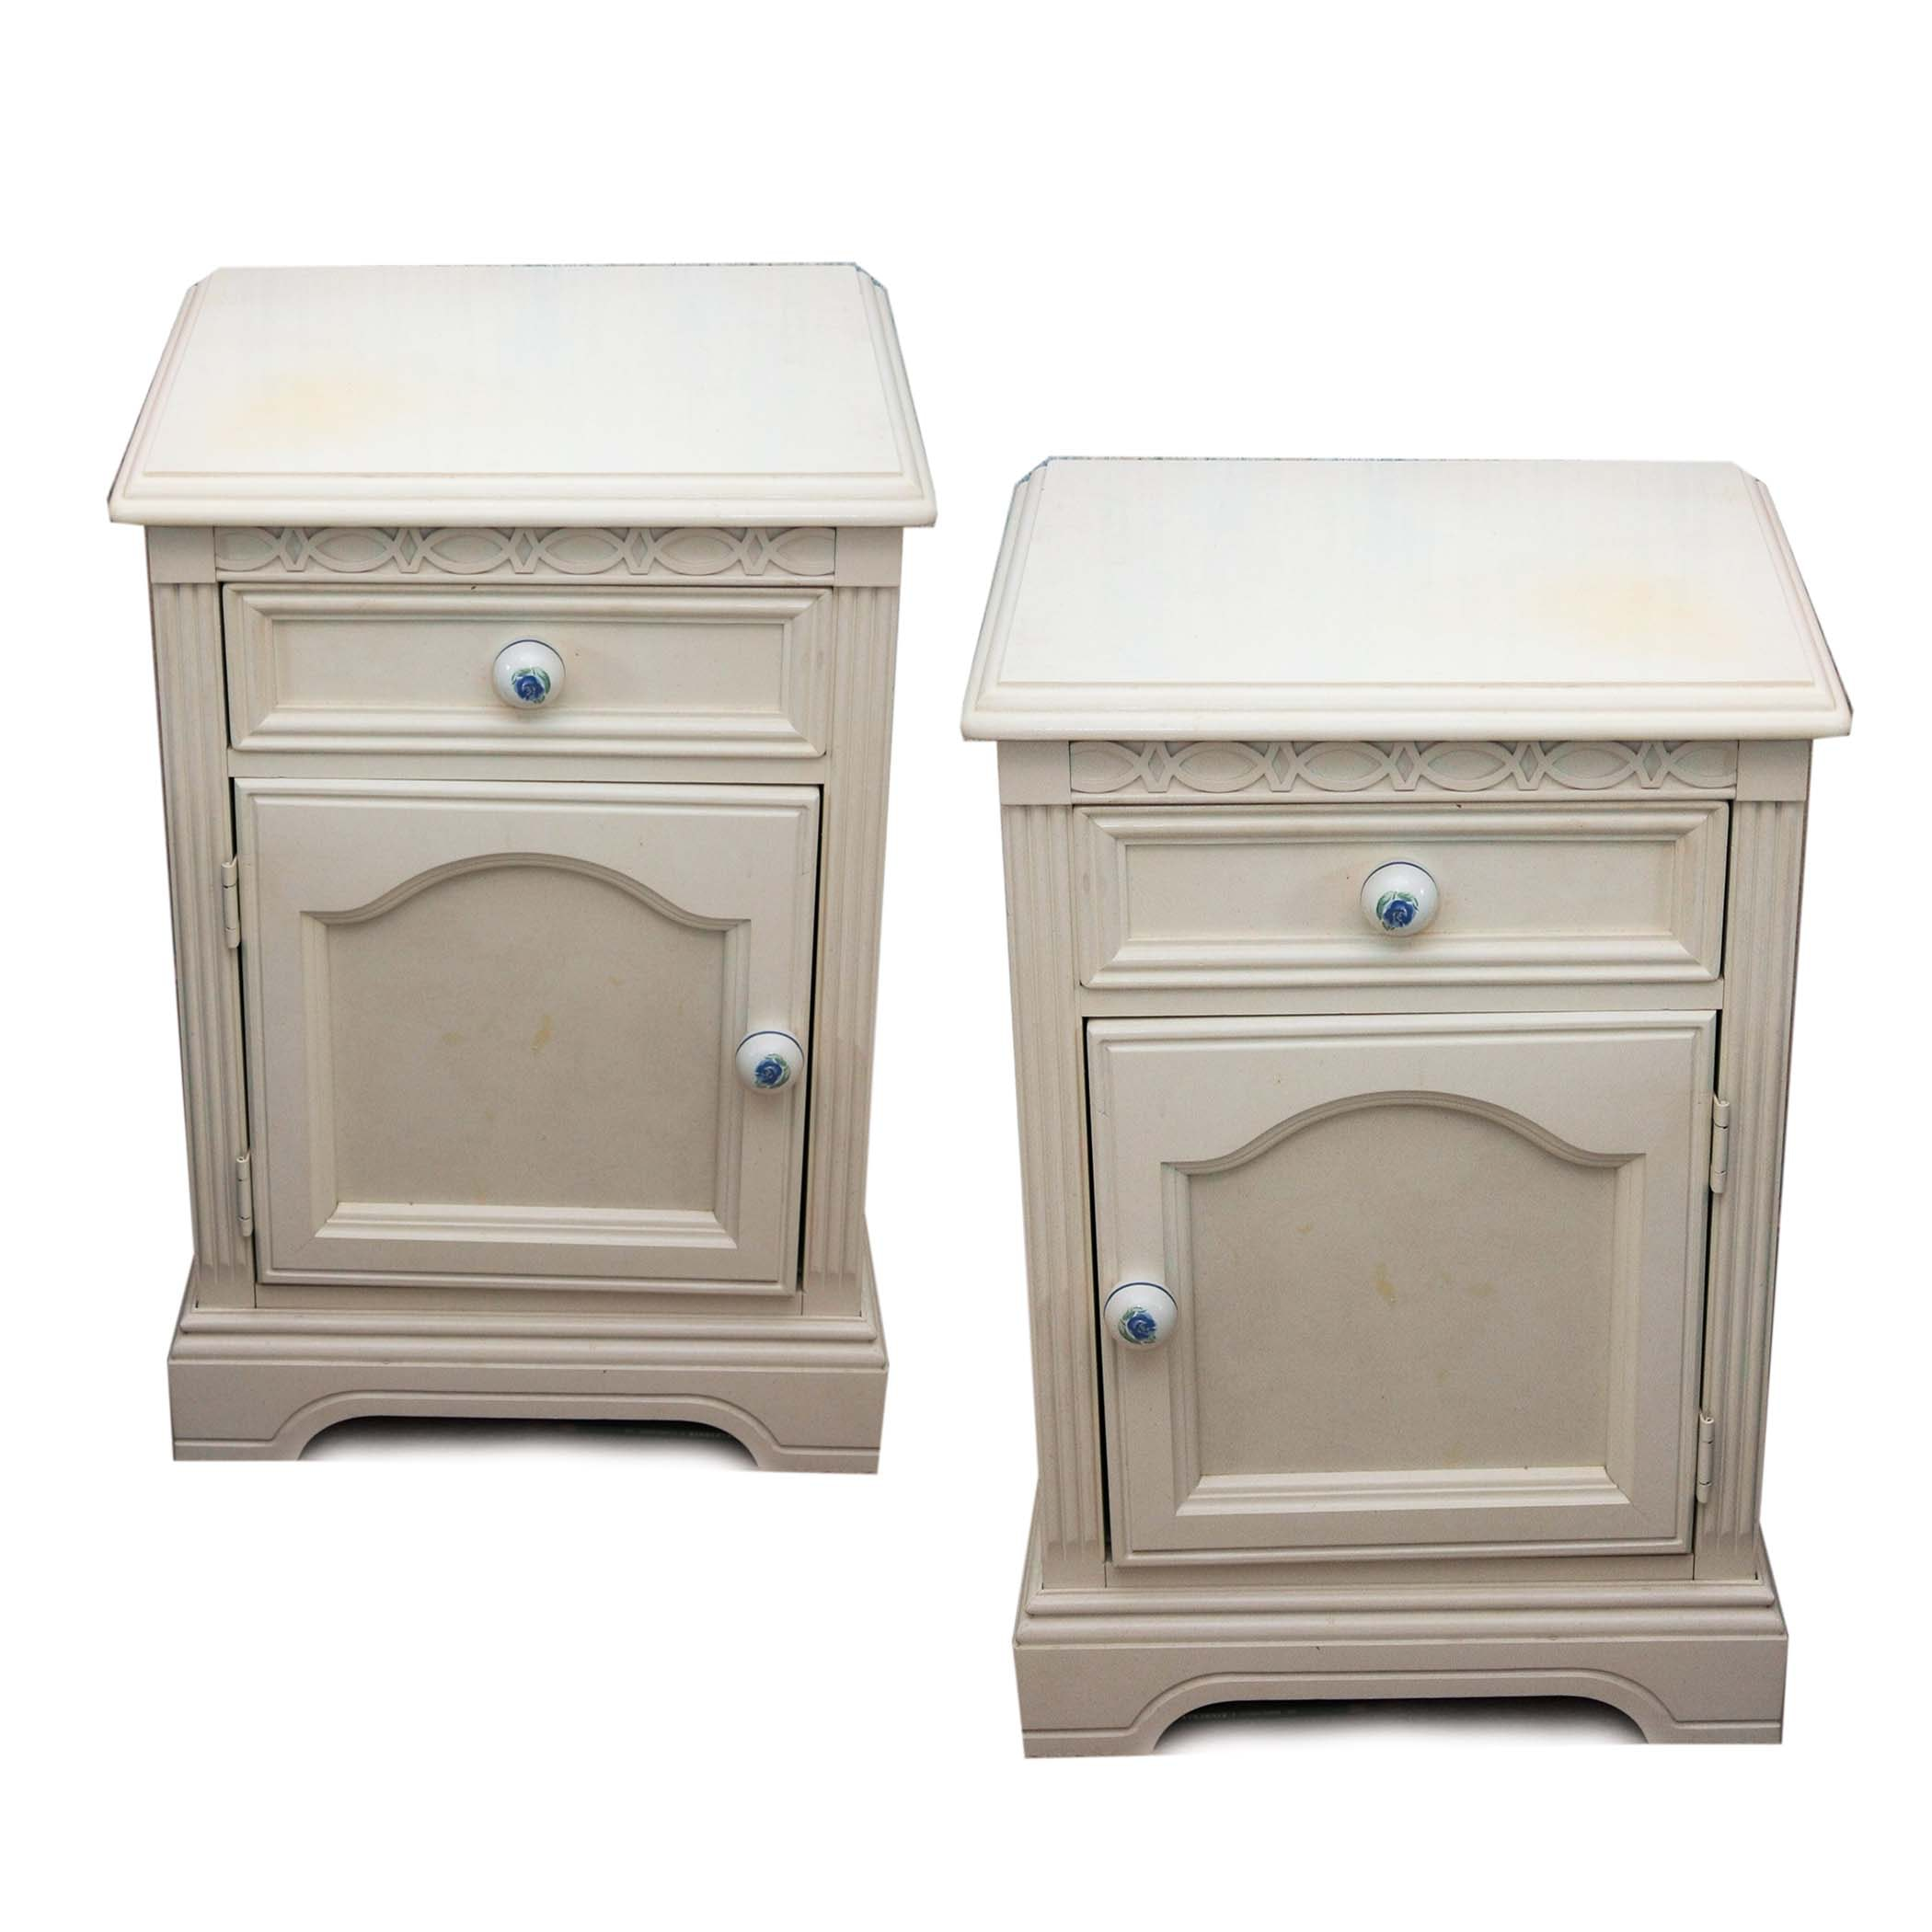 Pair of White Wooden Lexington Nightstands